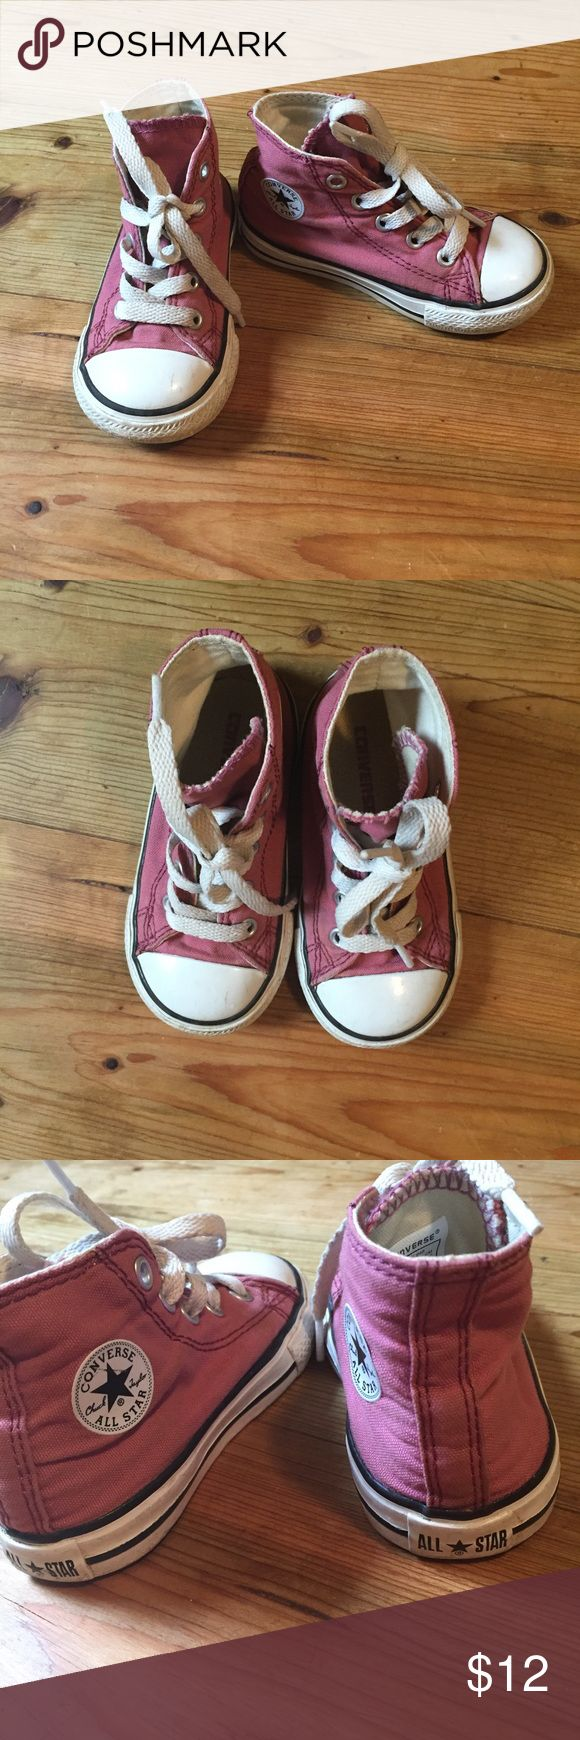 Converse pink high tops Converse All Stars high top sneakers, excellent condition, worn a handful of times. Super cute for your toddler! Converse Shoes Sneakers